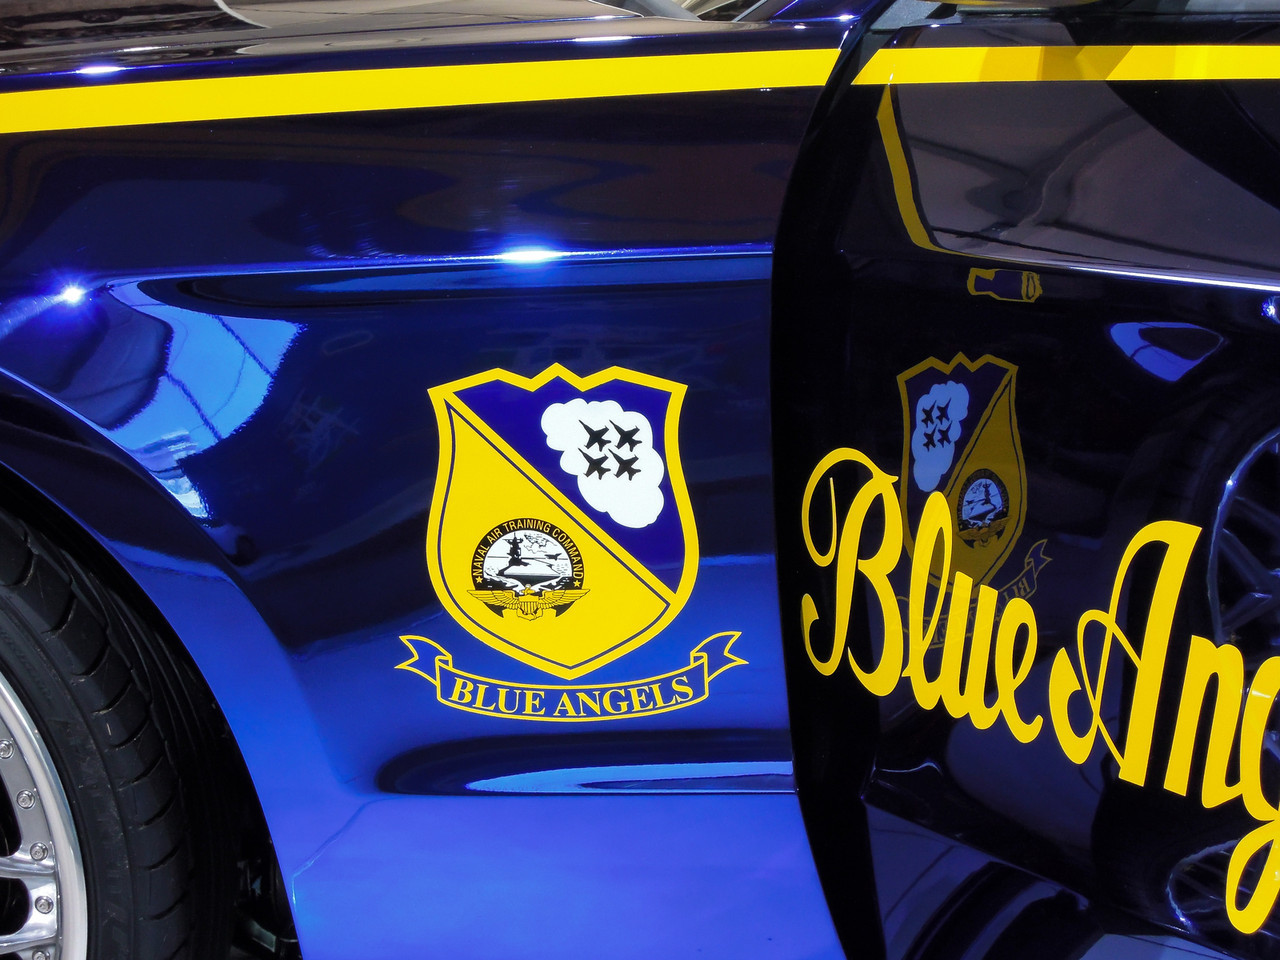 Blue Angels Ford Mustang